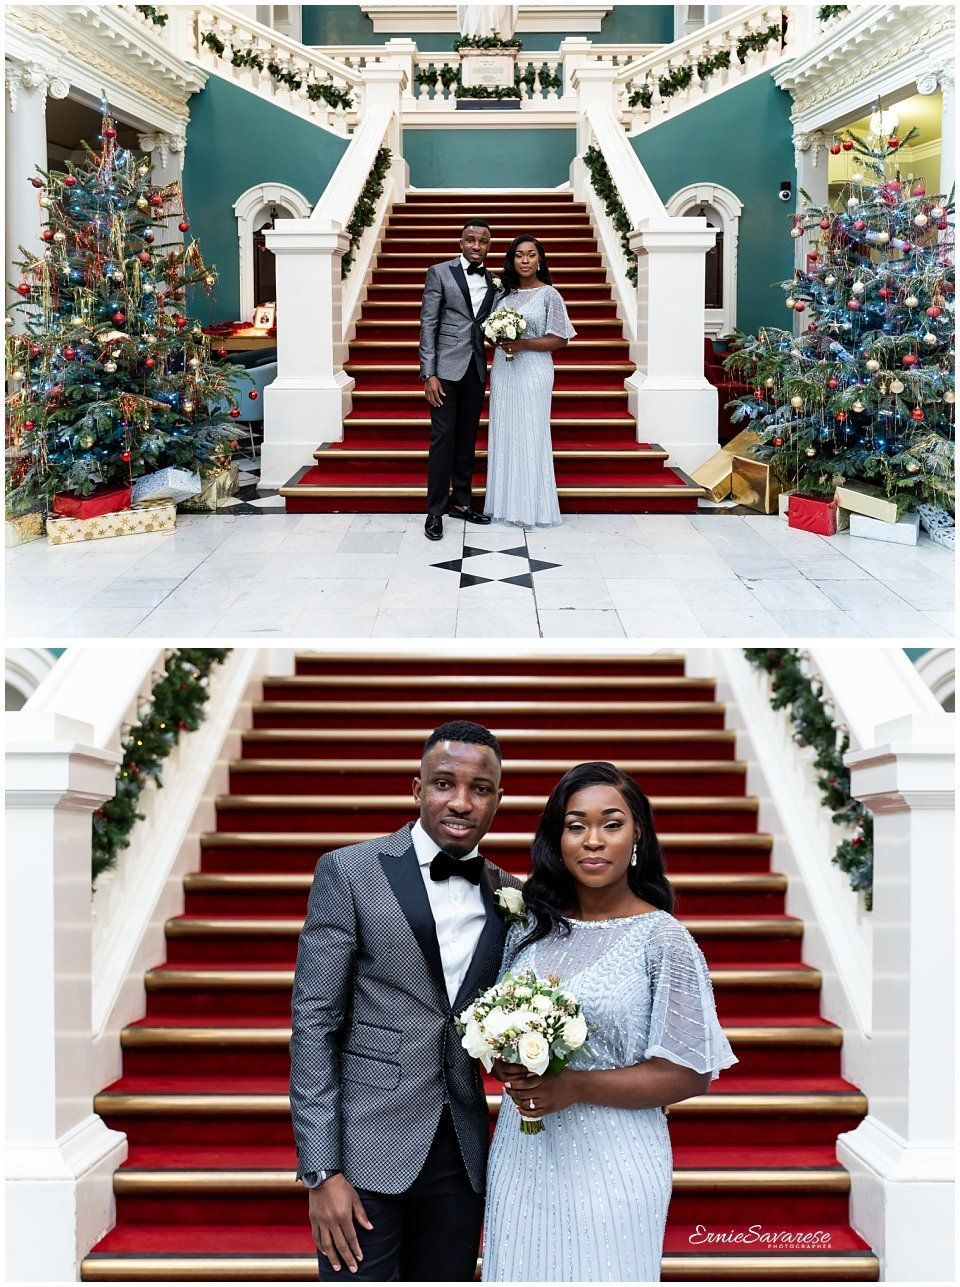 Deckhouse Woolwich Wedding | Photo by gm photographics www